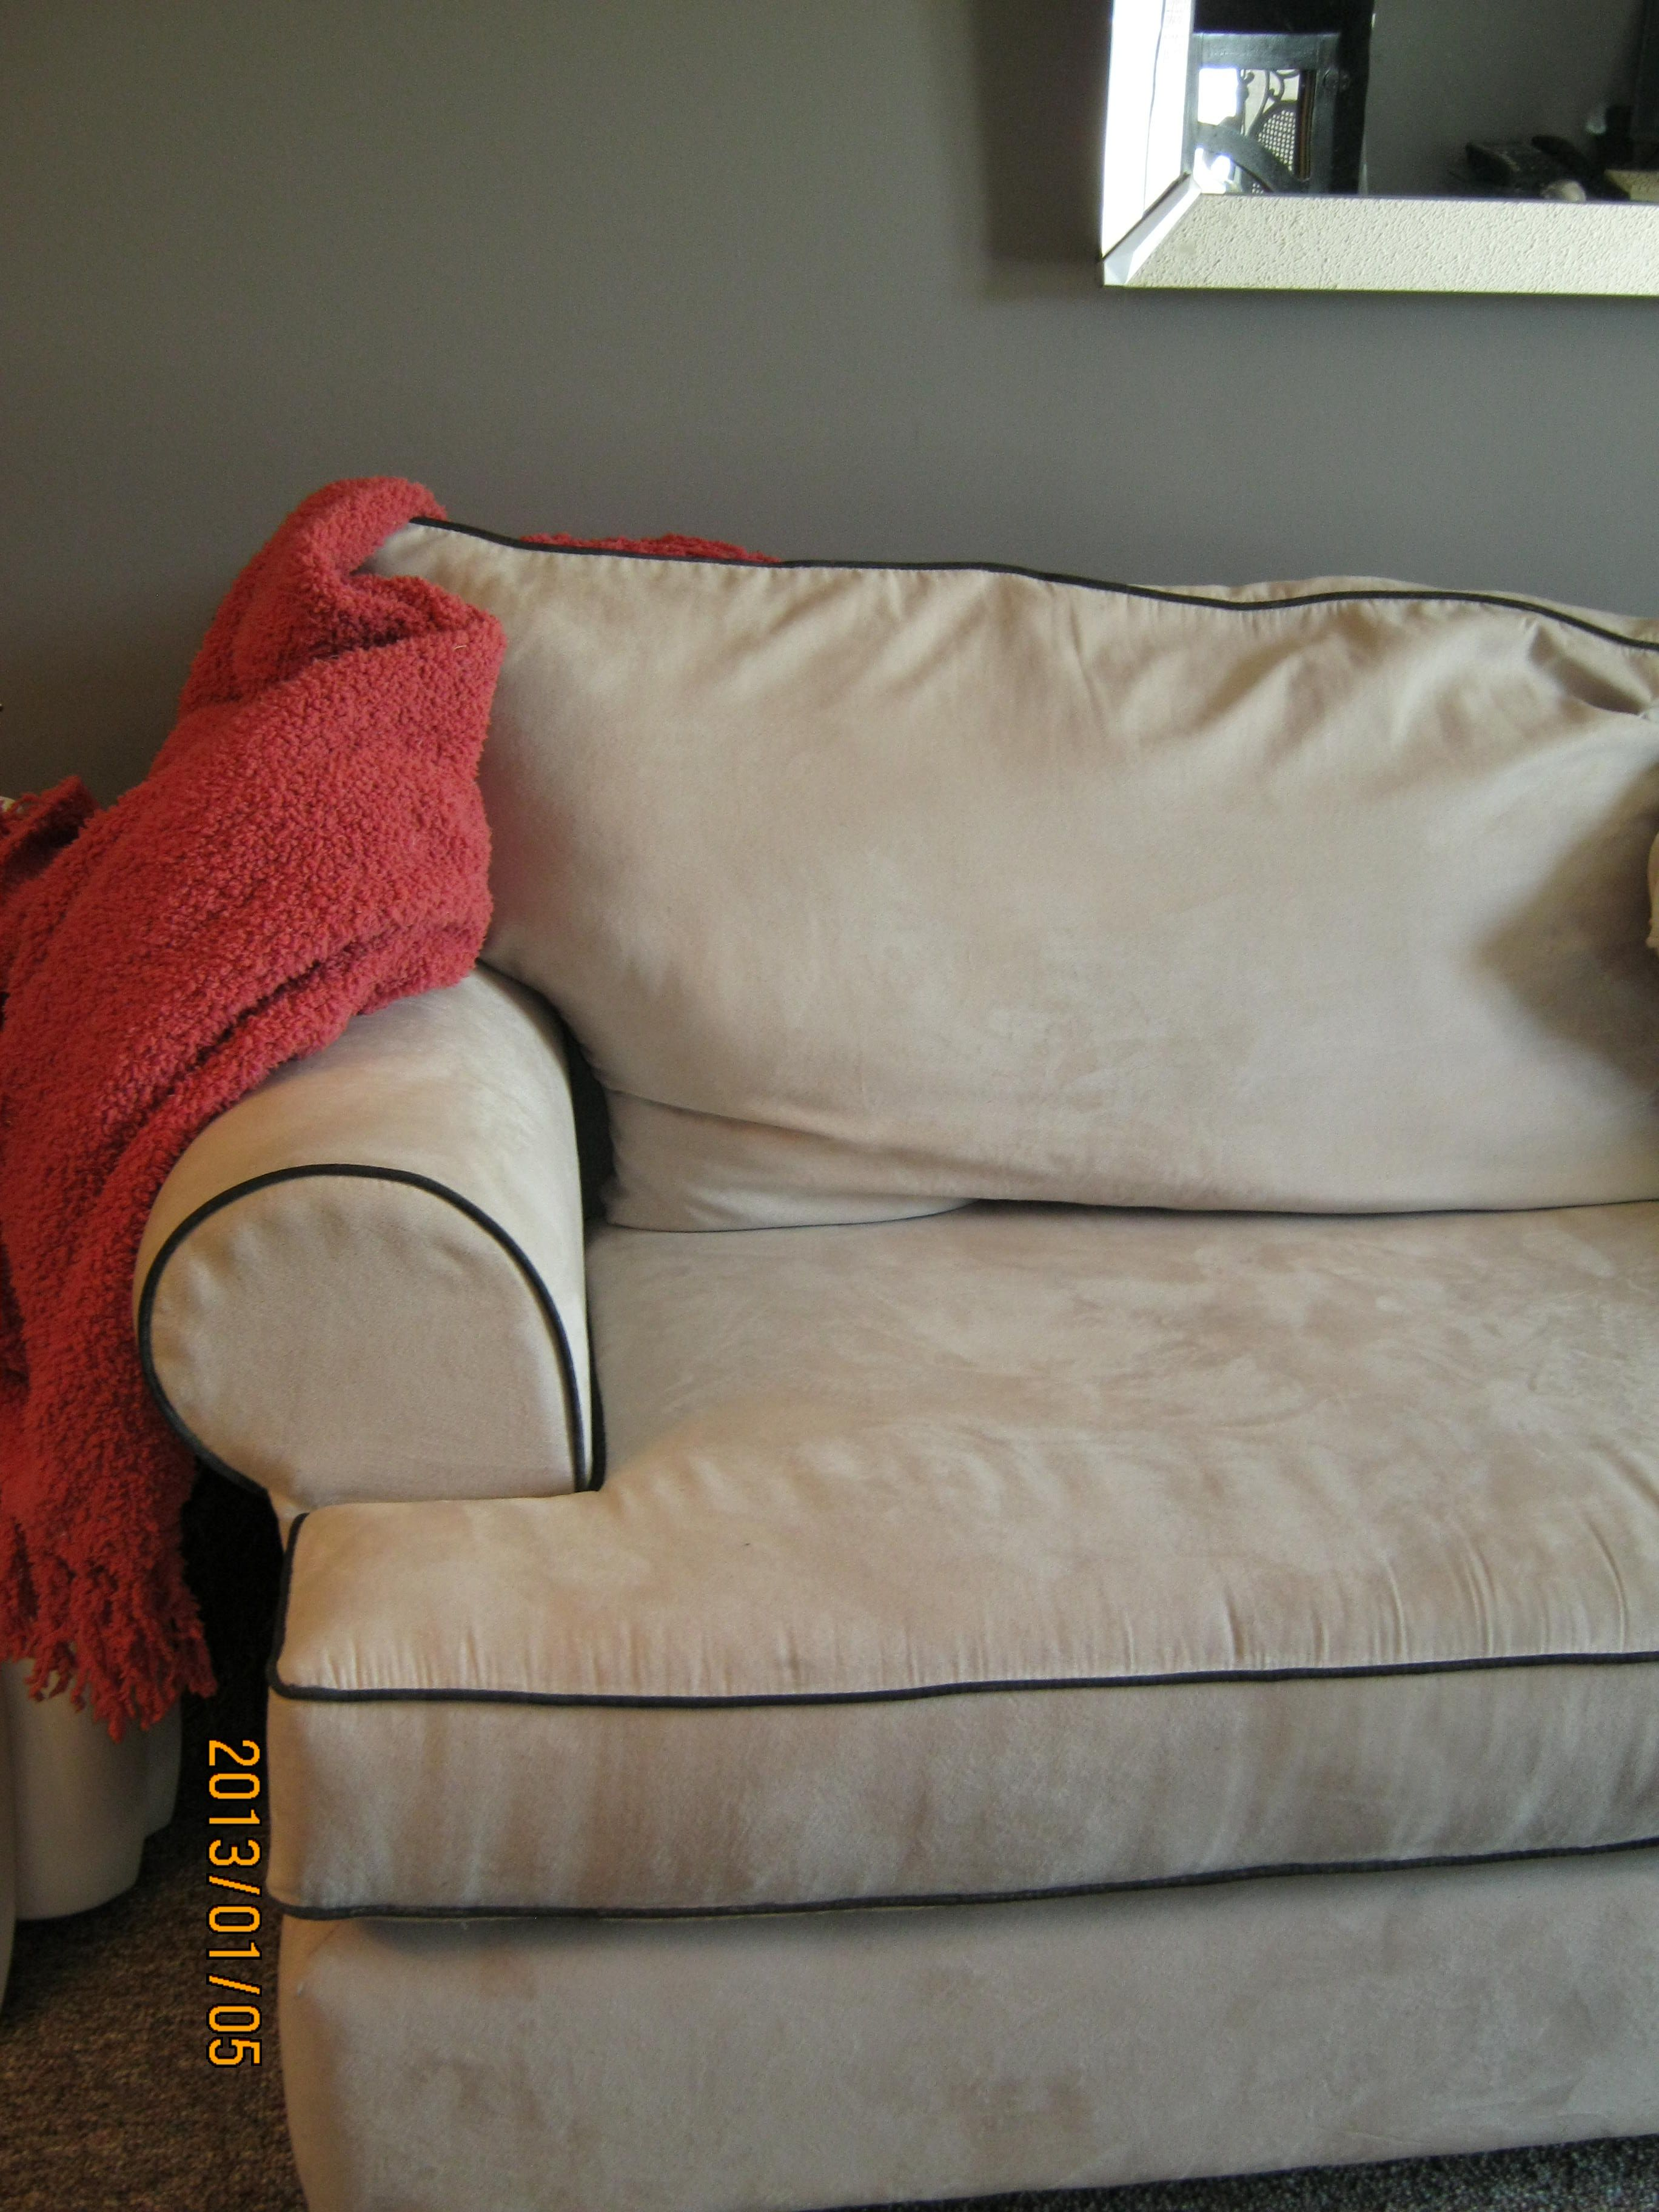 Regular Beige Sofa, Coloured The Piping Black Using Fabric Pen For Contrast.